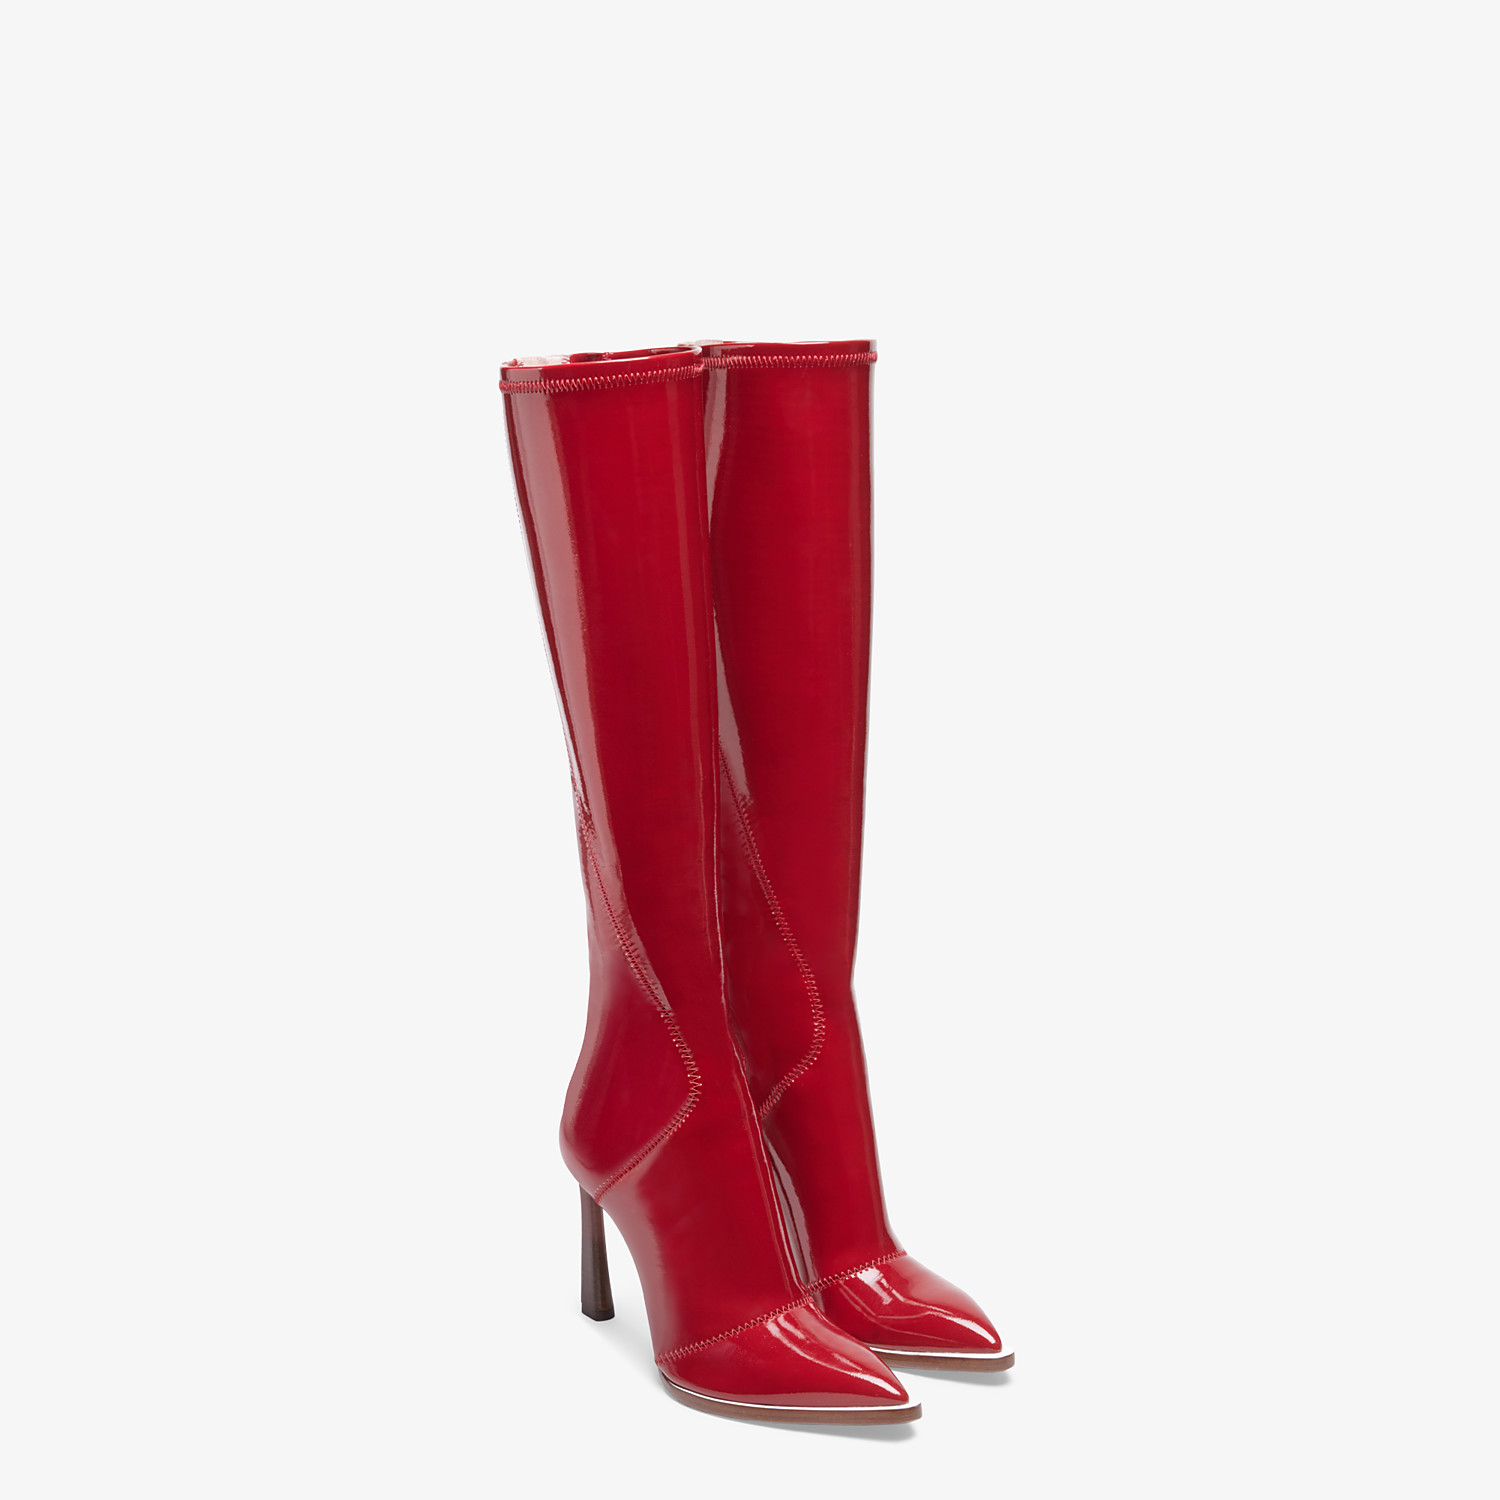 FENDI BOOTS - Glossy red neoprene boots - view 4 detail